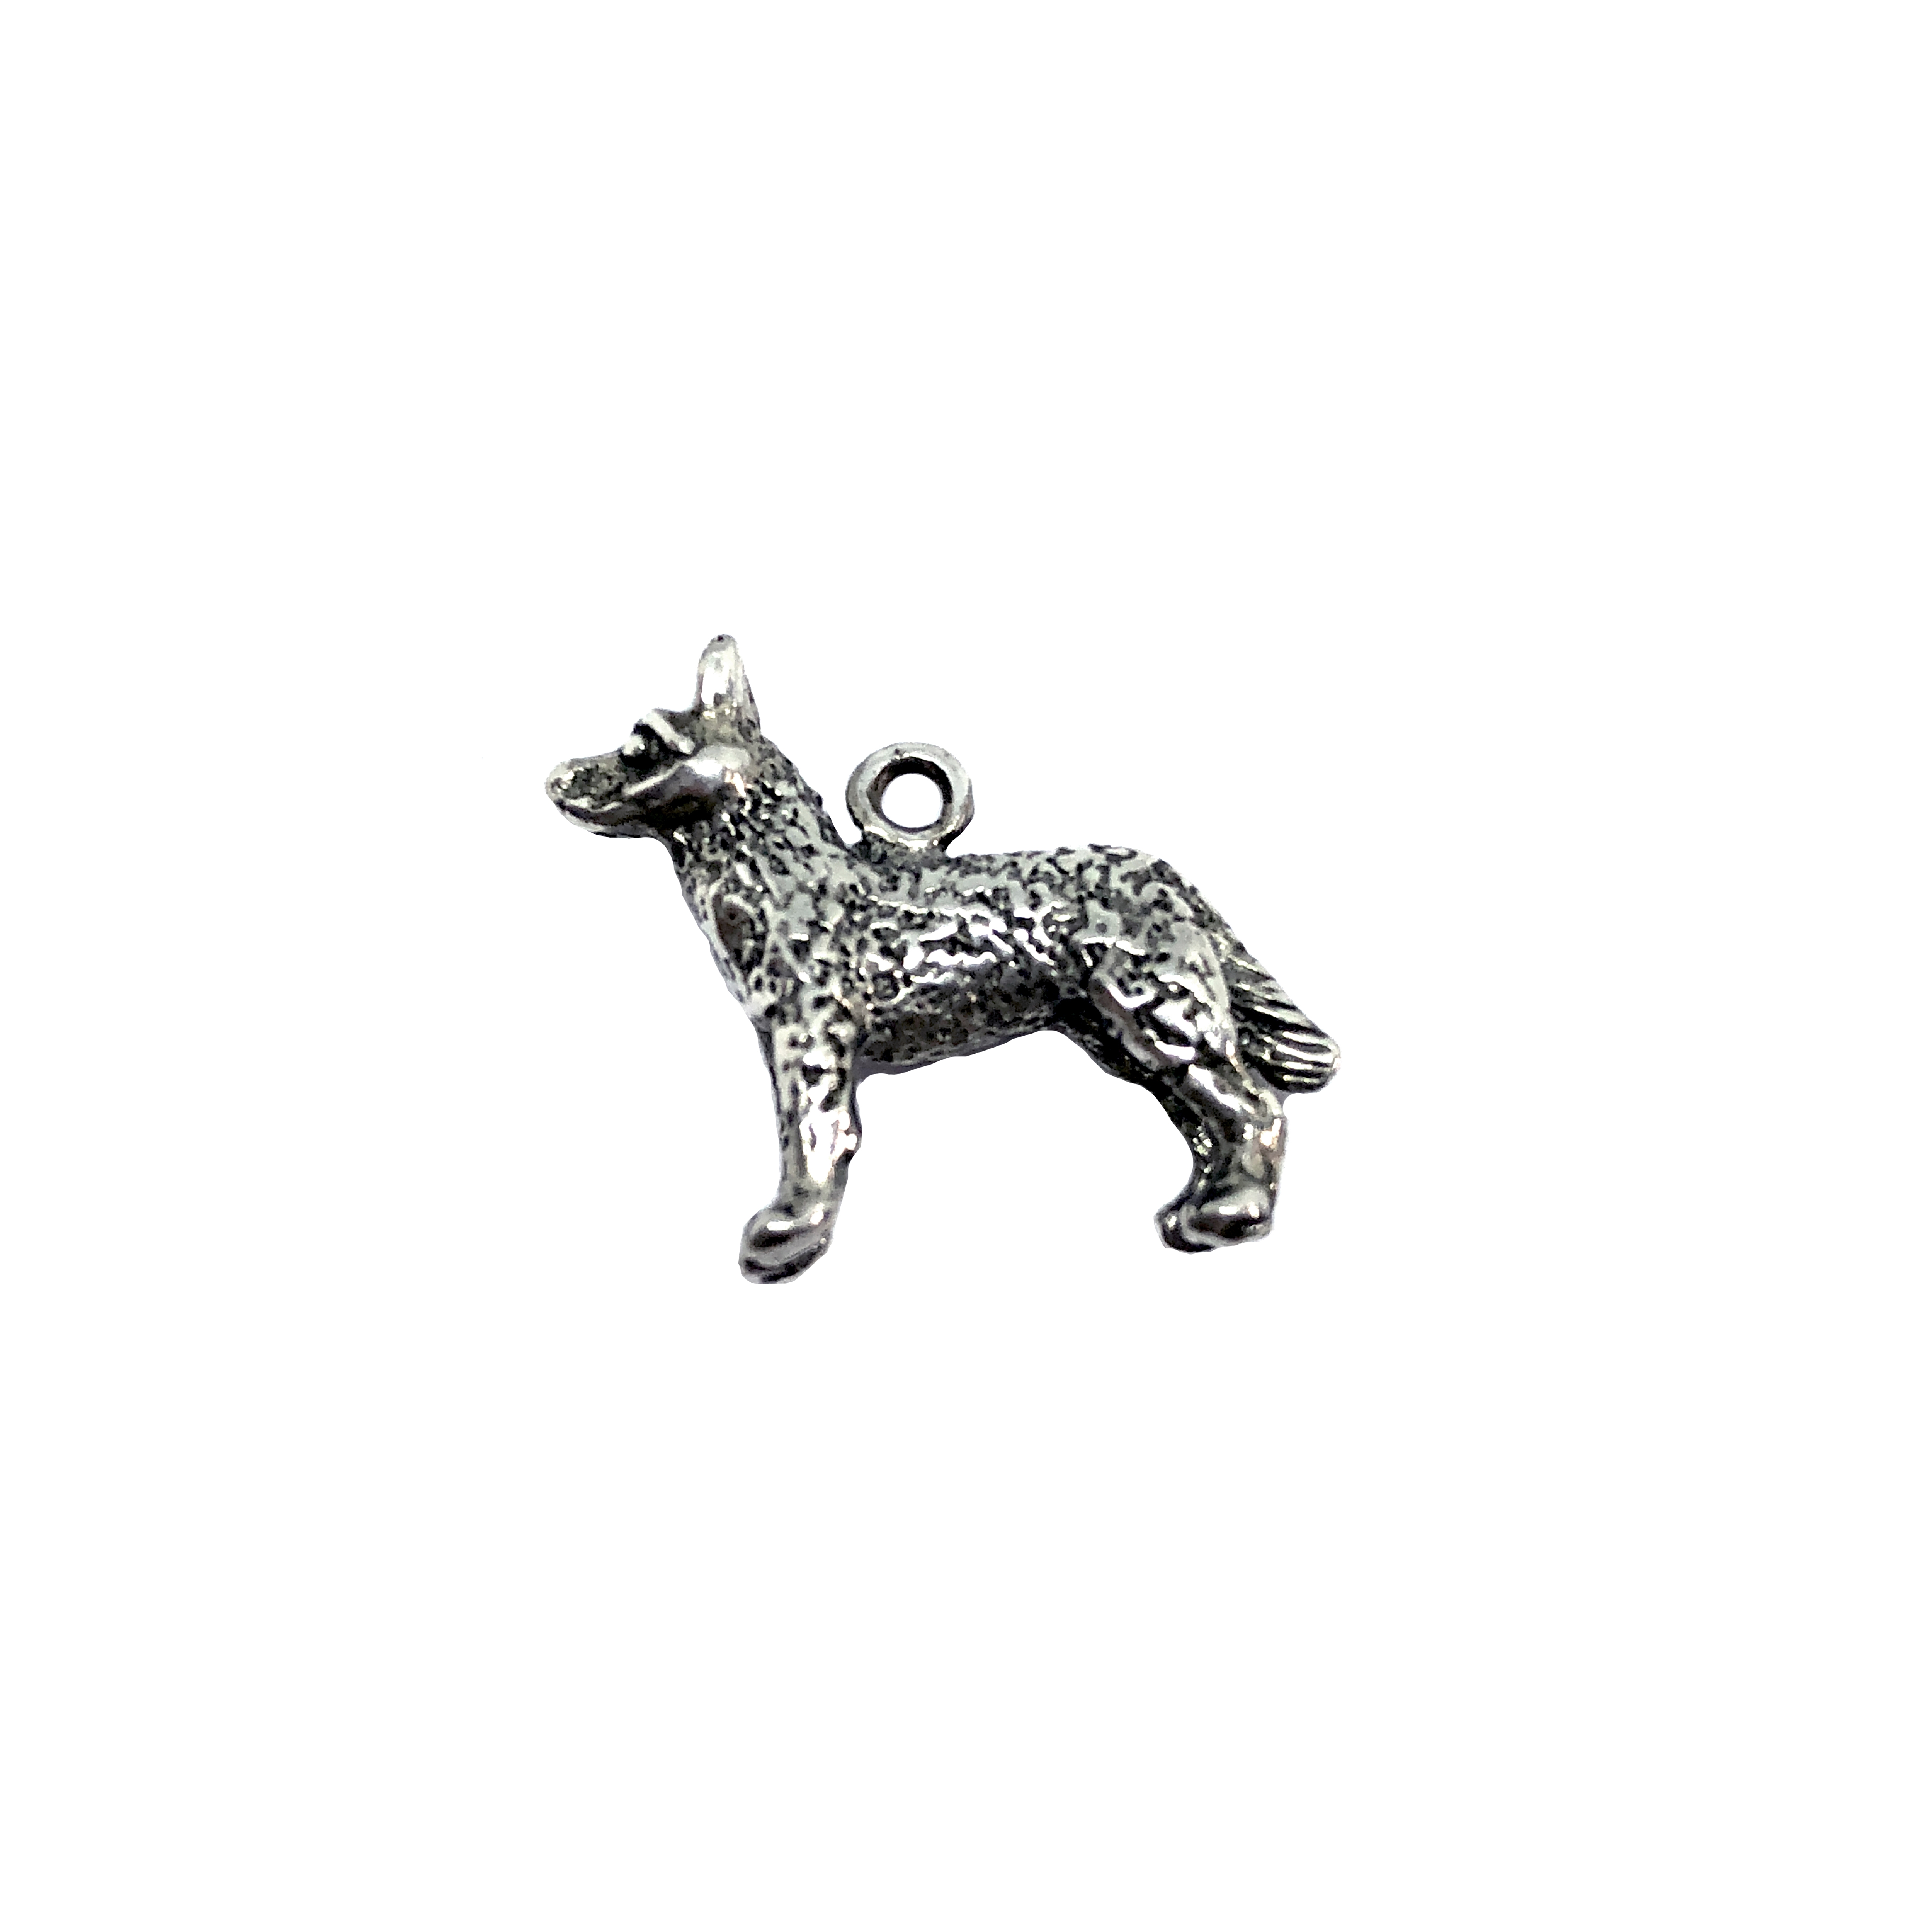 german shepherd, charm, standing dog, 07410, Old Silver, plated pewter, pewter, charm, dog charm, US made jewelry supplies, nickel free jewelry supplies, b'sue boutiques, dog jewelry, silver dog, silver charm,